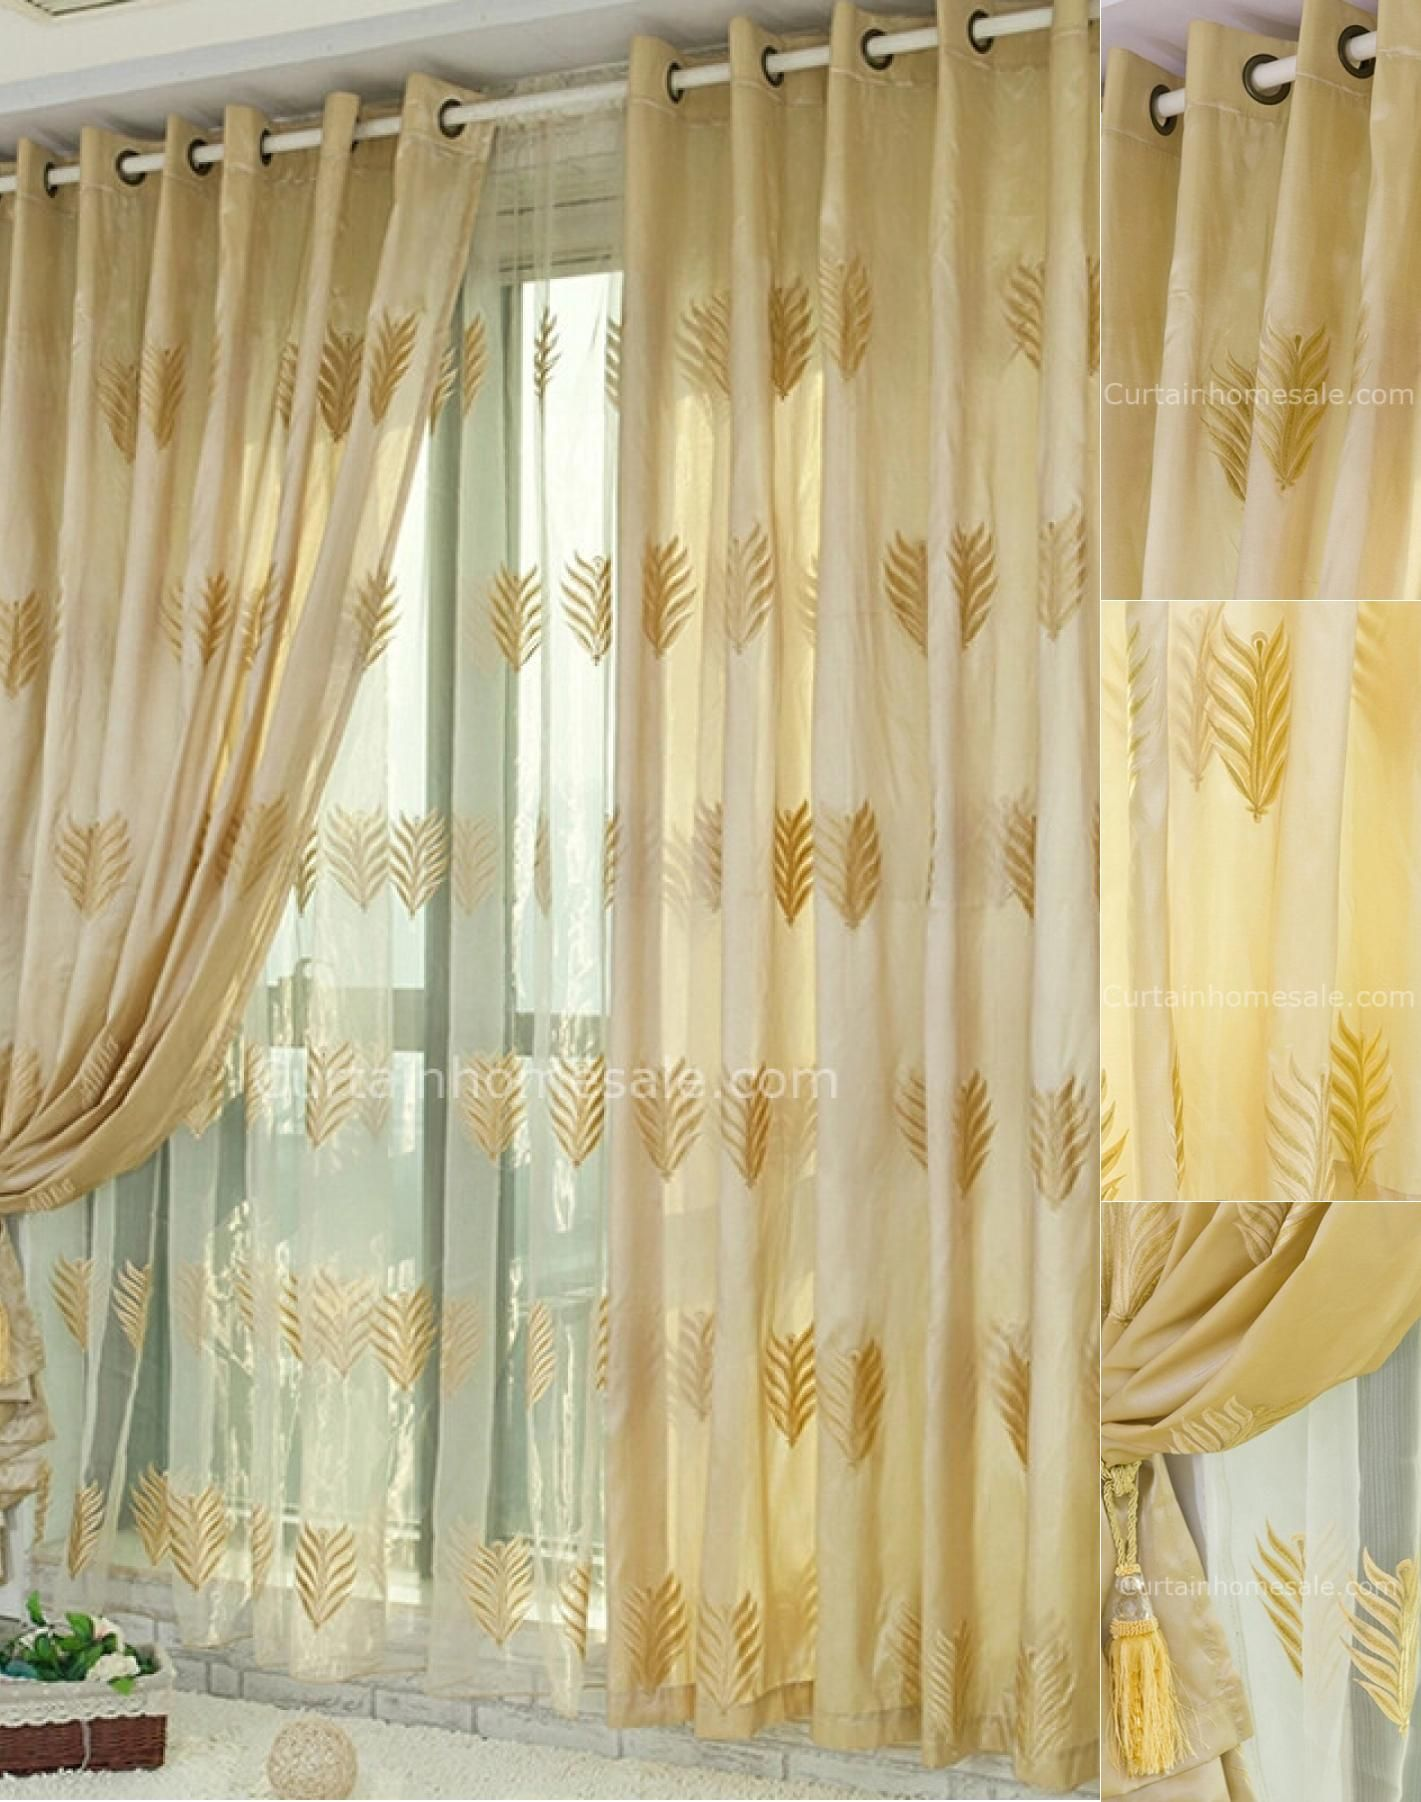 Fabulous leaf patterns embroidery bedroom blackout yellow - Black and gold living room curtains ...